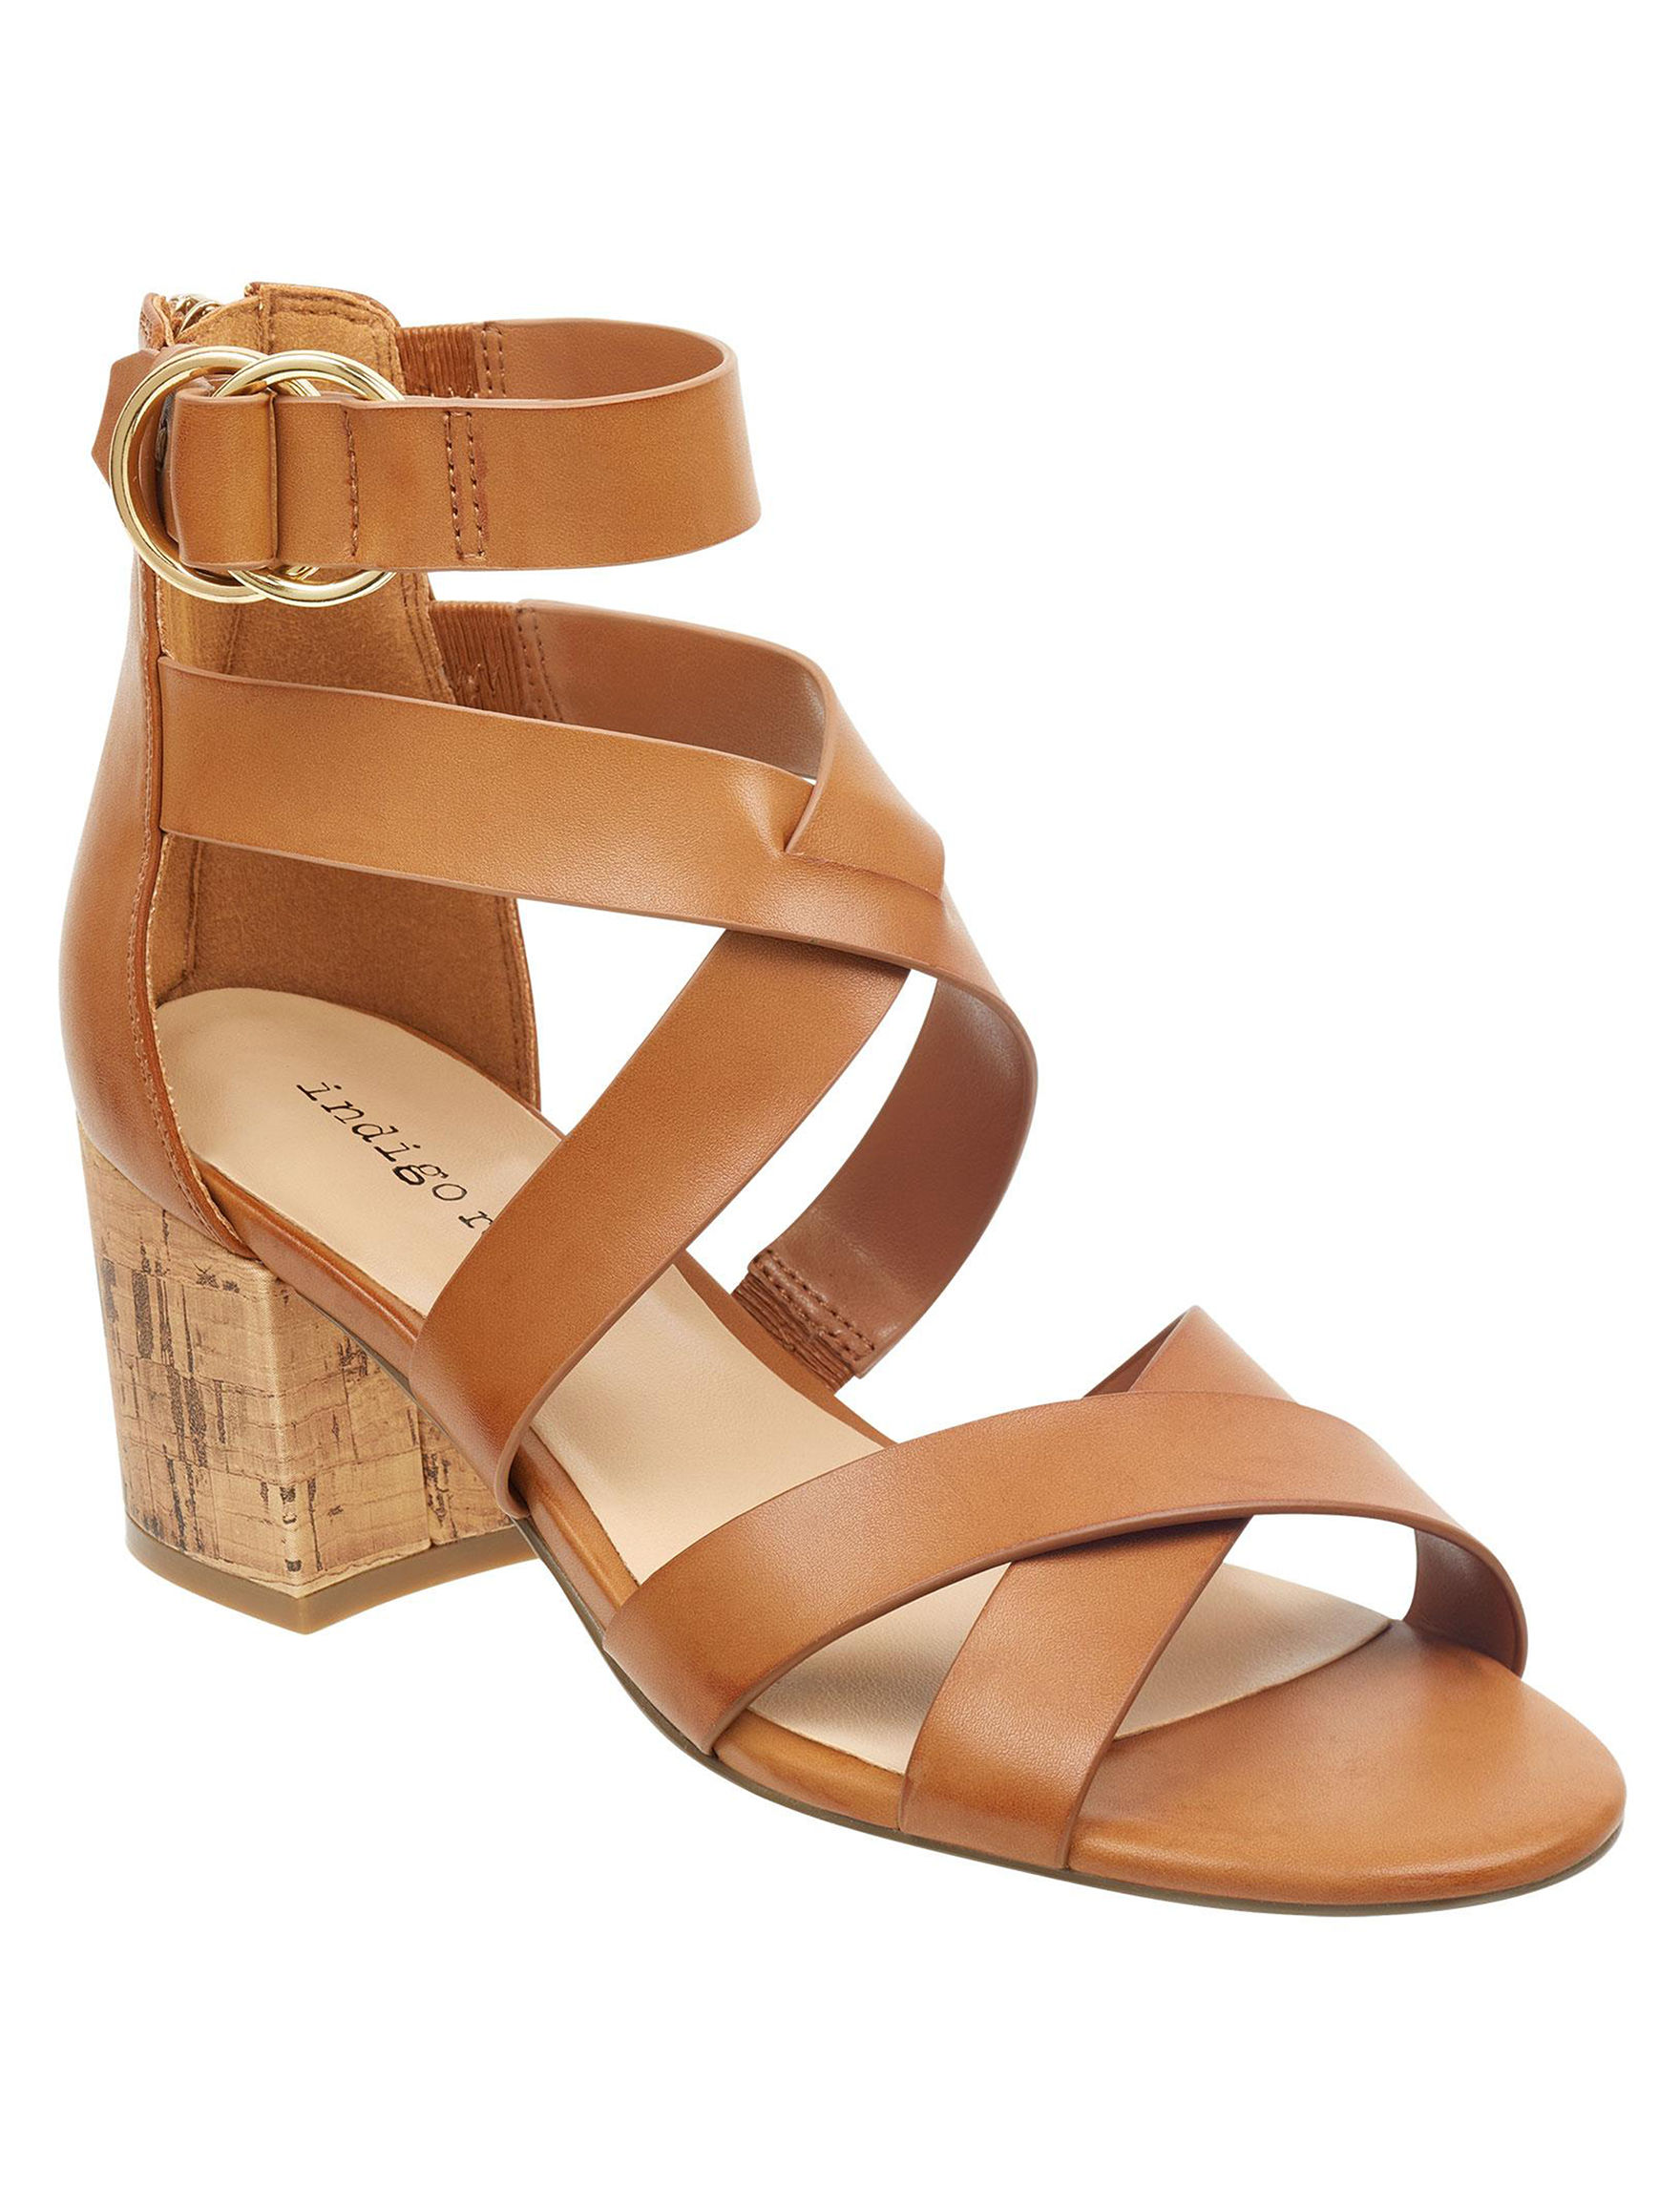 Indigo Rd. Beige Heeled Sandals